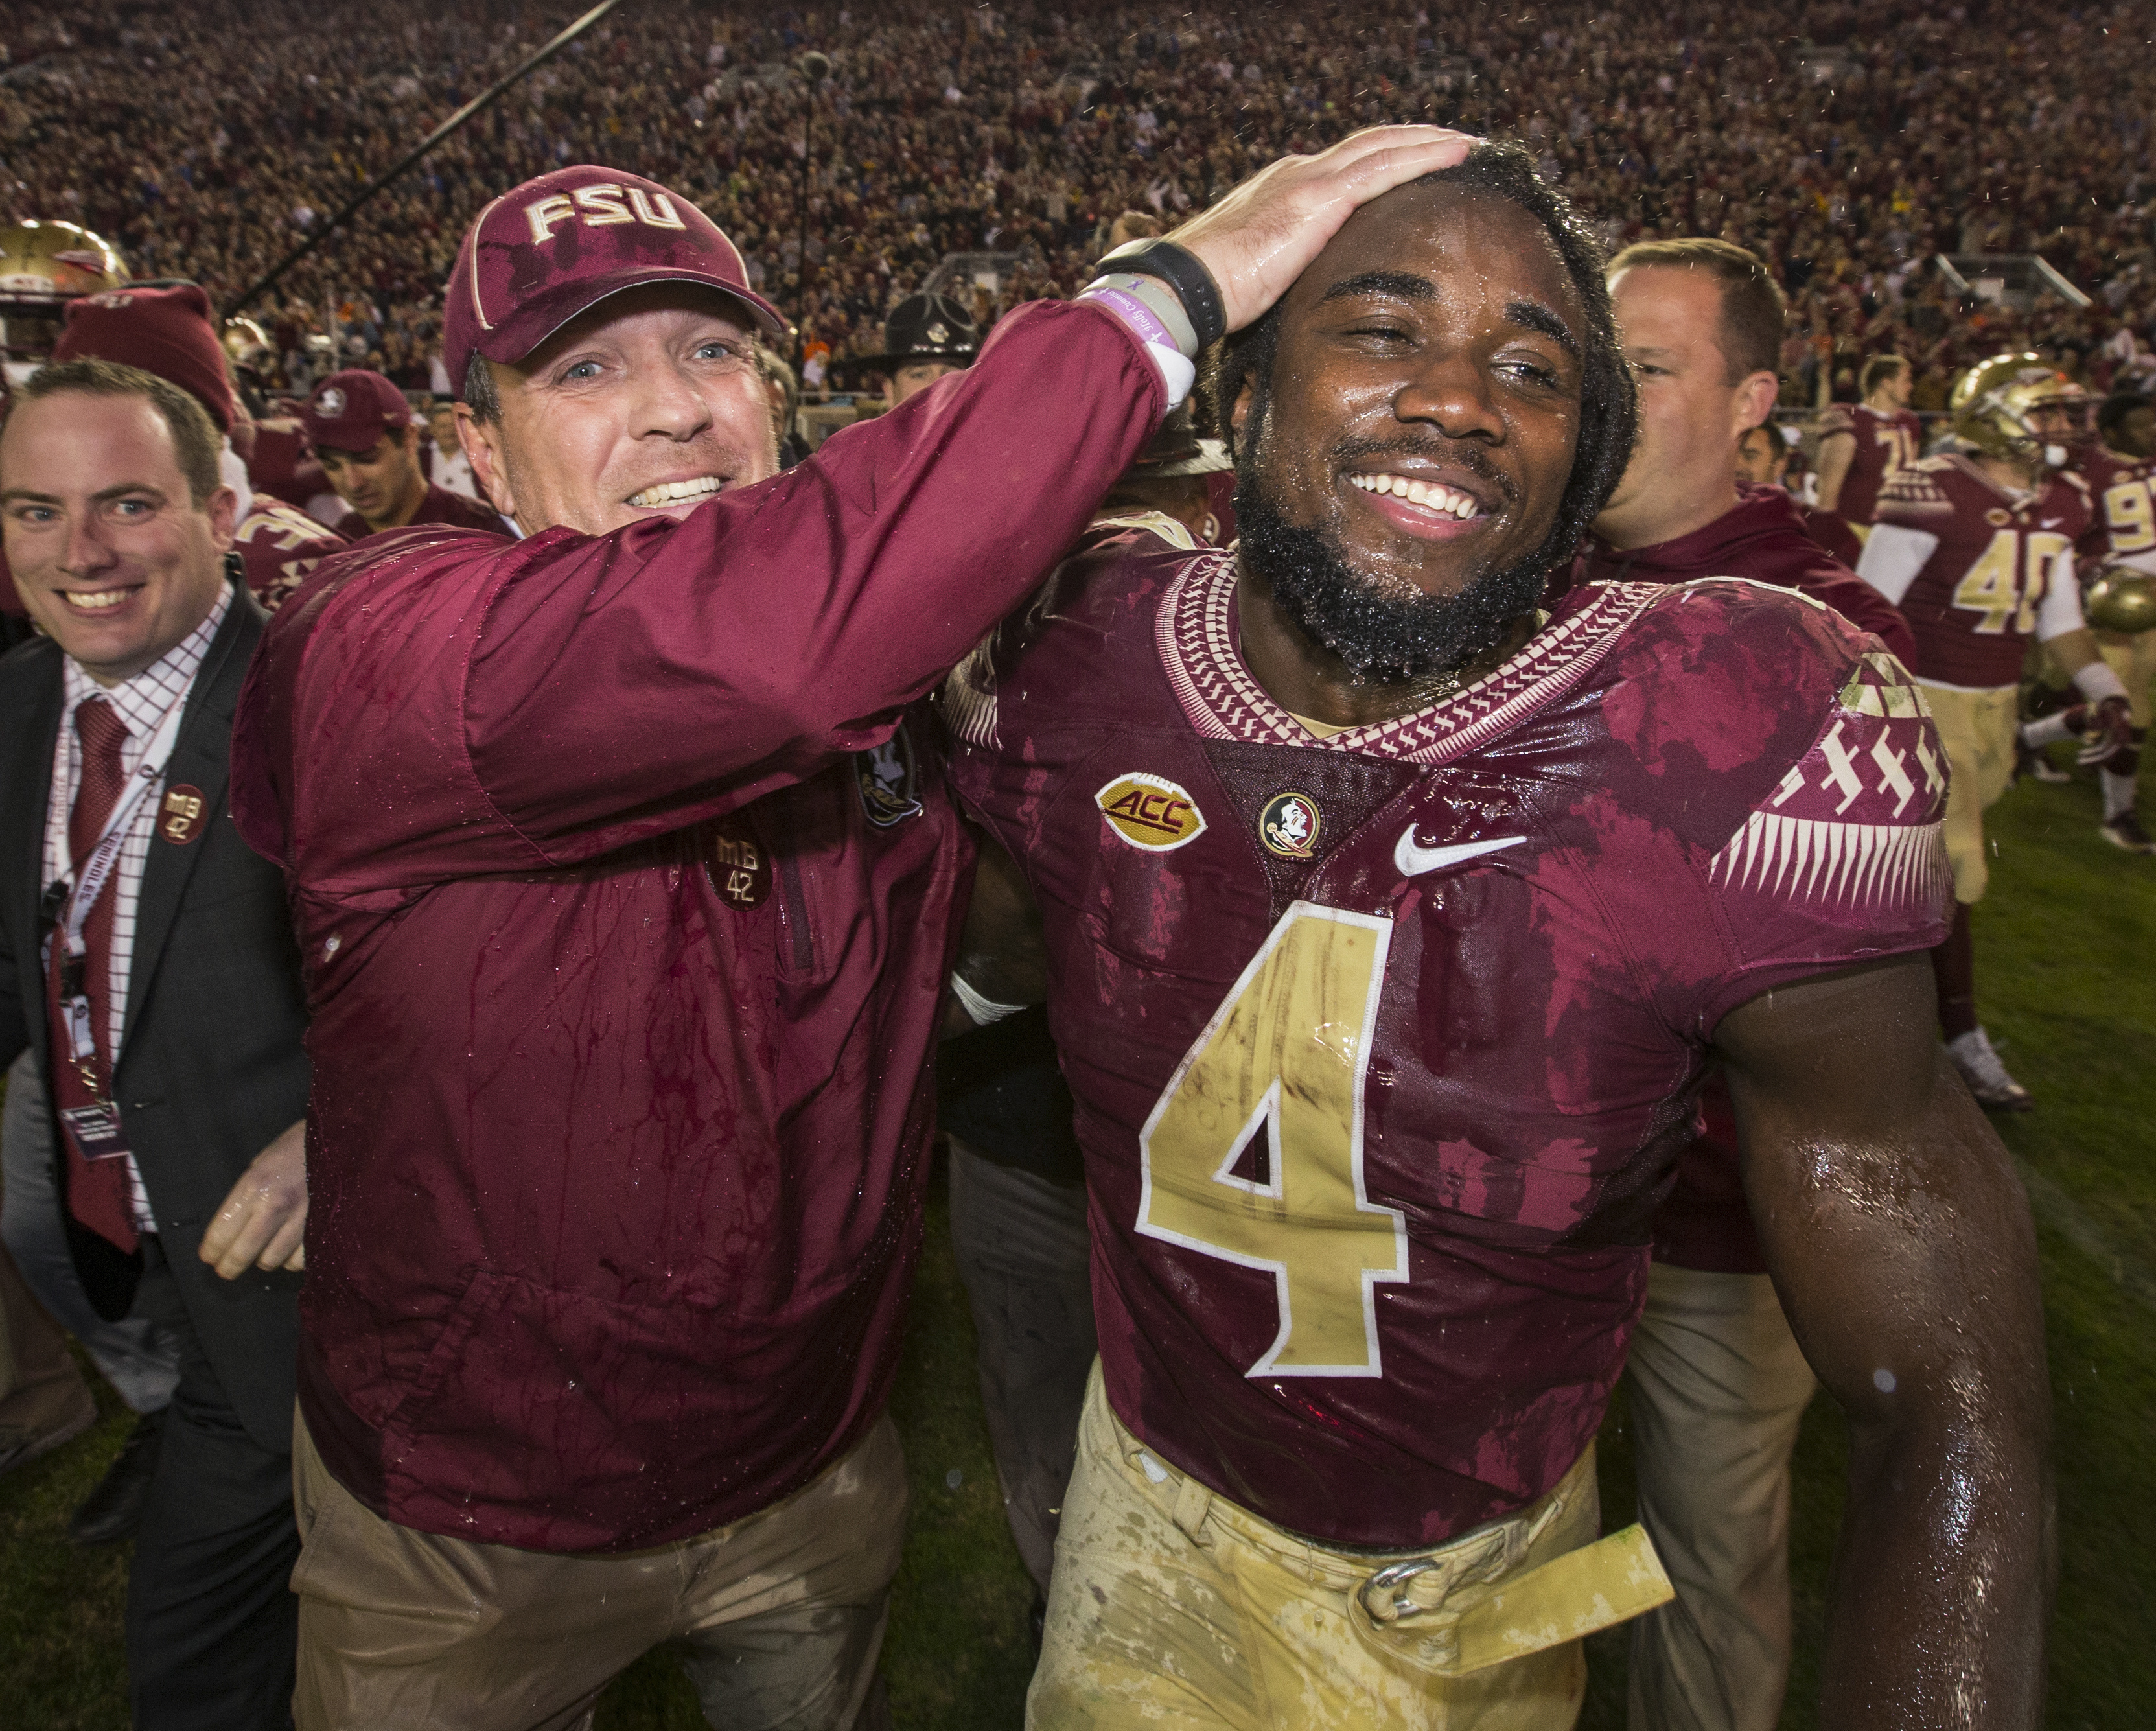 Florida State coach Jimbo Fisher and running back Dalvin Cook celebrate the team's 31-13 win over Florida in an NCAA college football game in Tallahassee, Fla., Saturday, Nov. 26, 2016. (AP Photo/Mark Wallheiser)